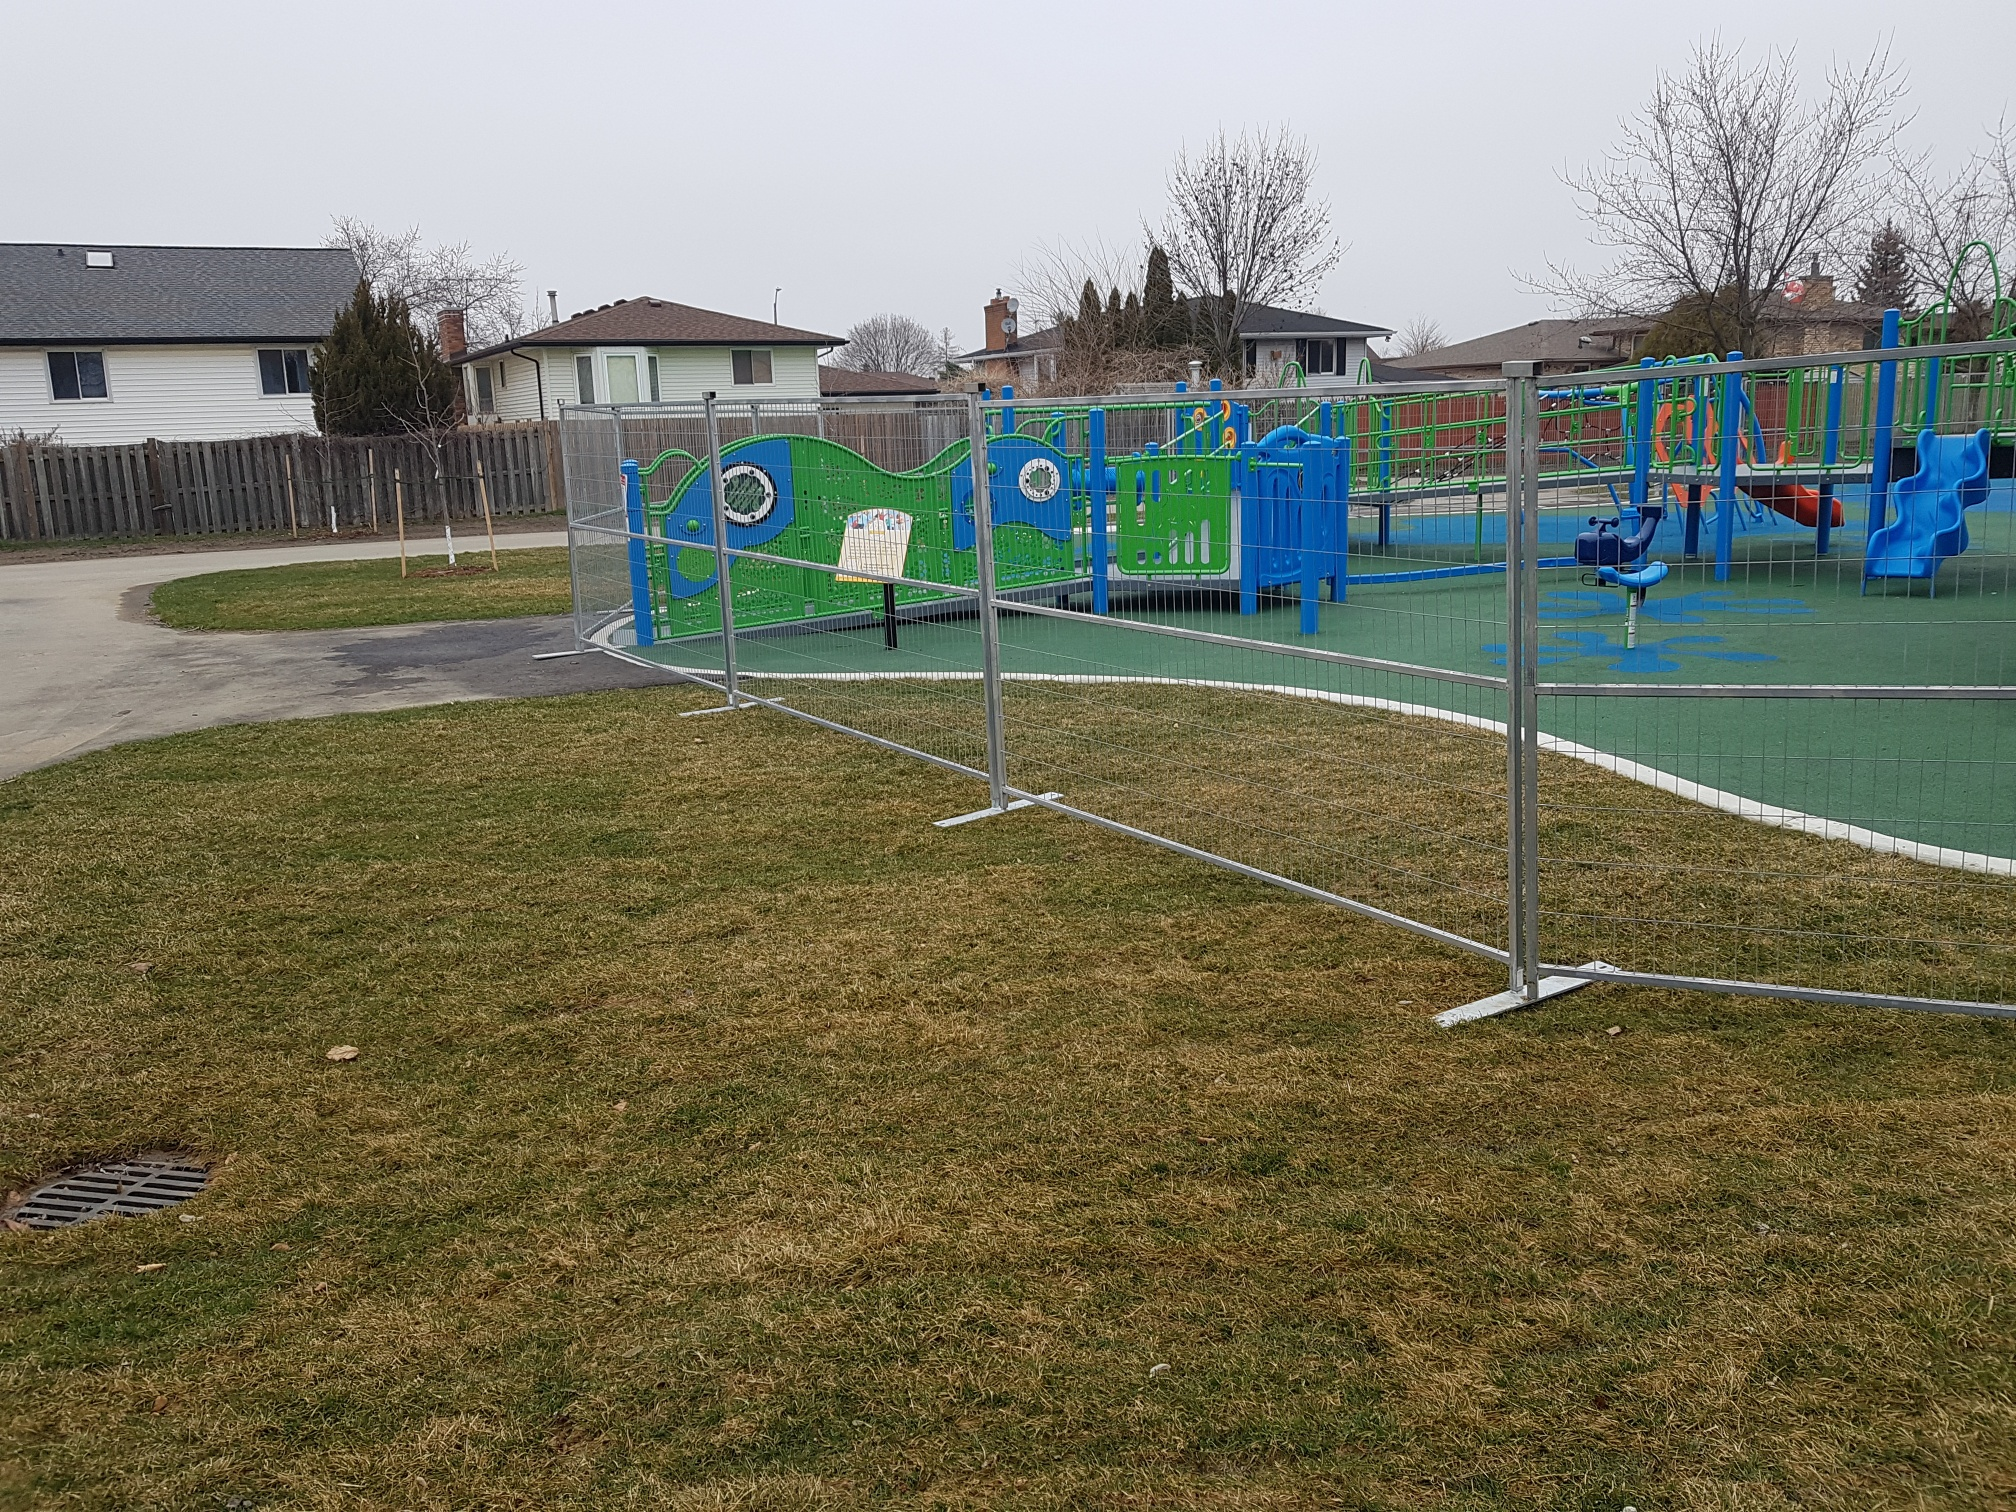 Temporary Closure of LaSalle Parks